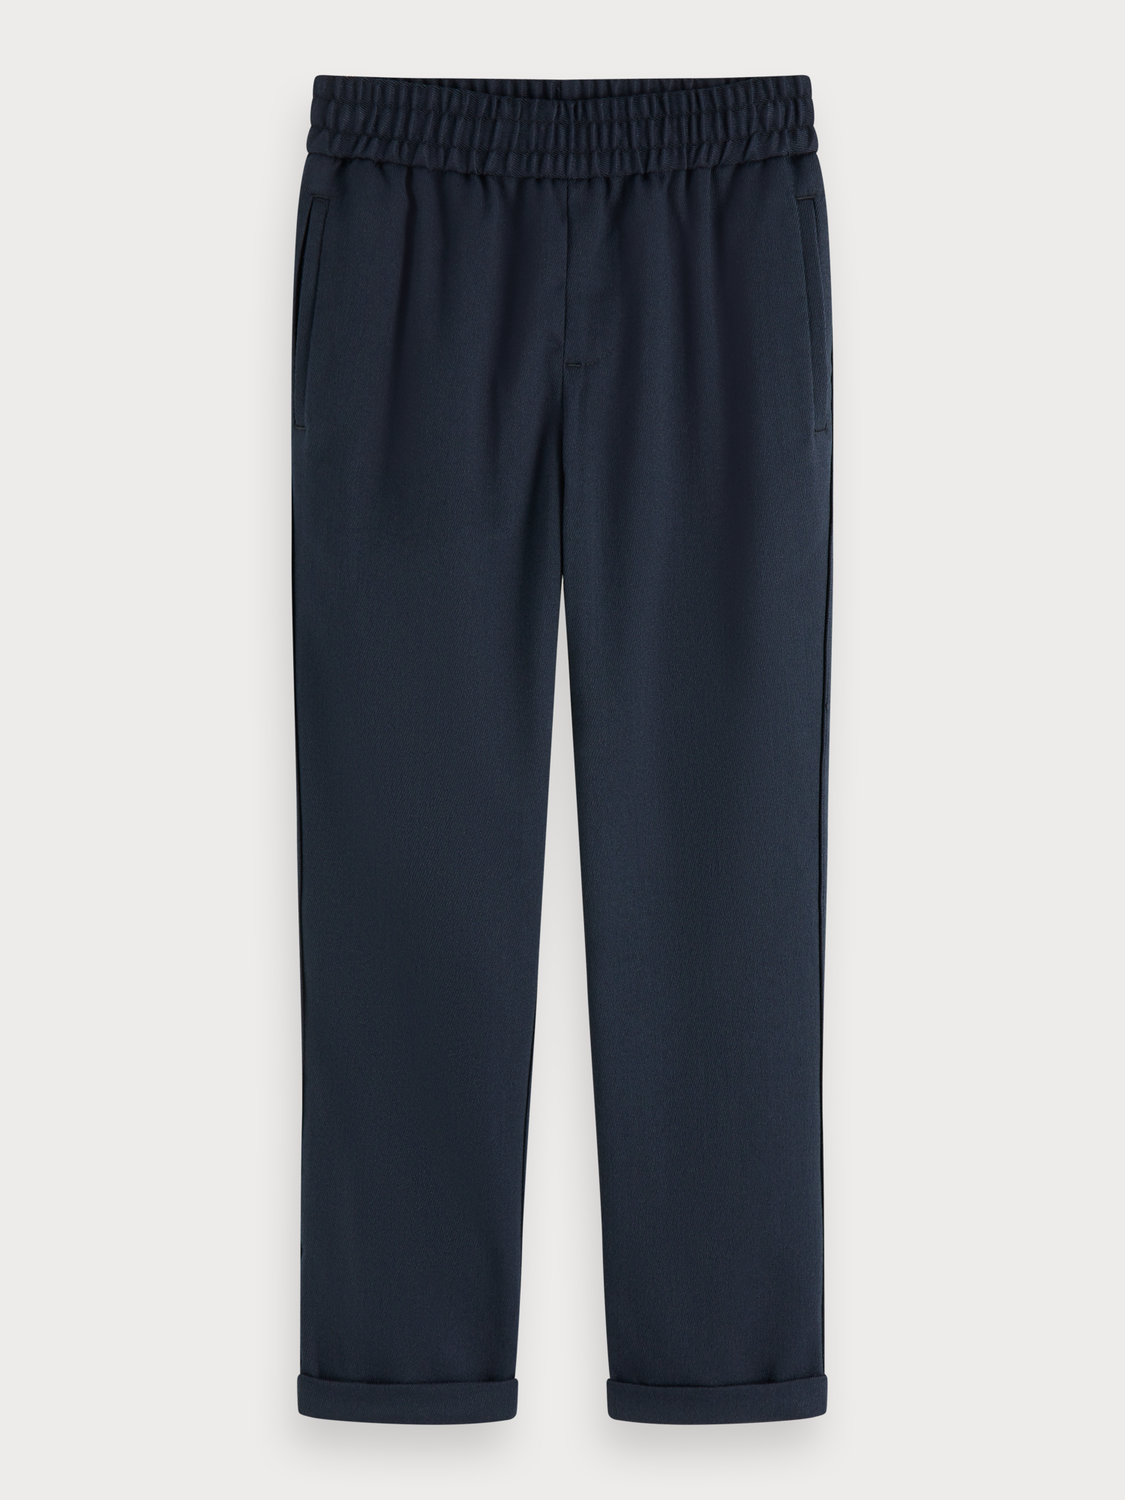 Boys Dressed trousers | Relaxed slim fit